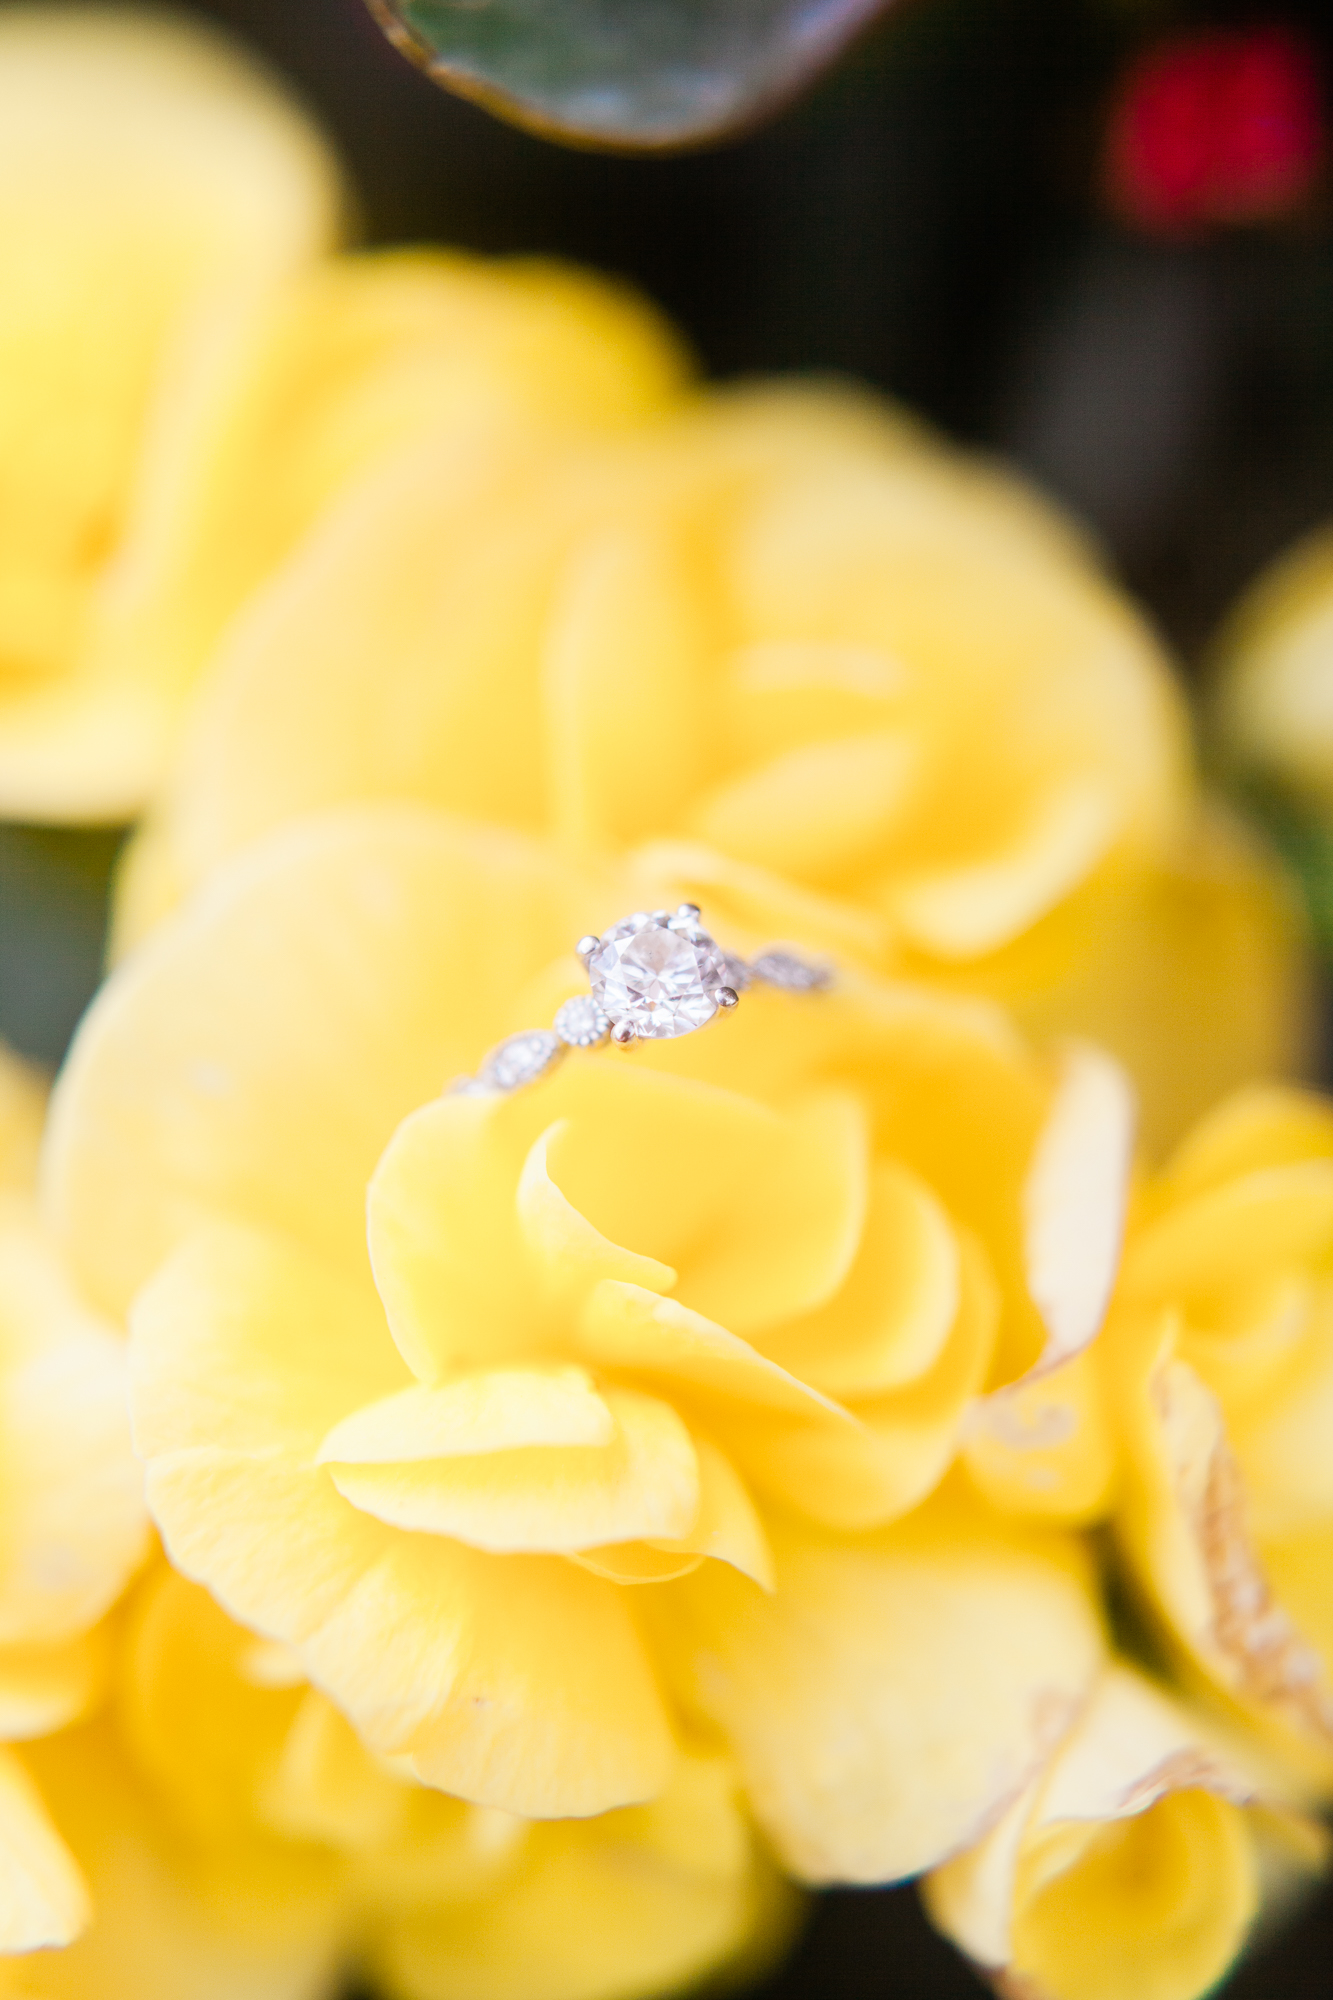 Pamper your ring too! - Get your ring cleaned so it sparkles and shines.